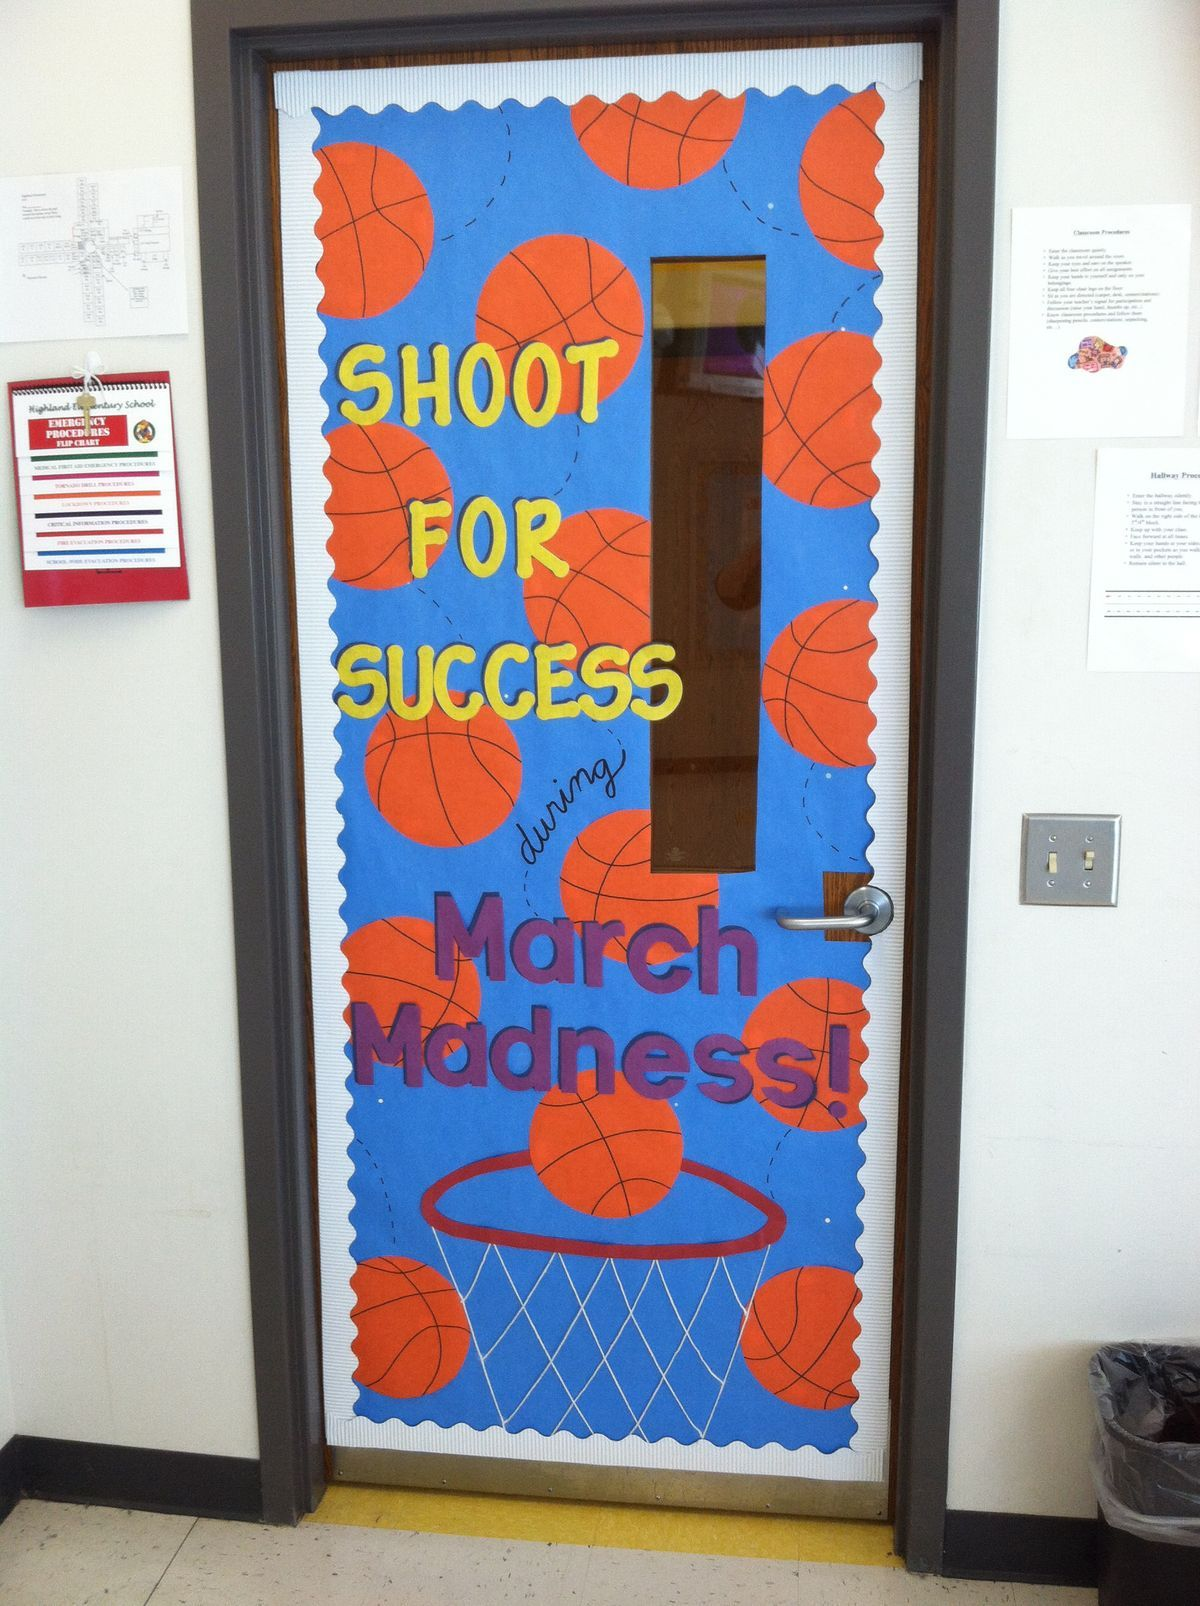 March Madness themed classroom door Def doing this next yr! : sports themed classroom decorating ideas - www.pureclipart.com